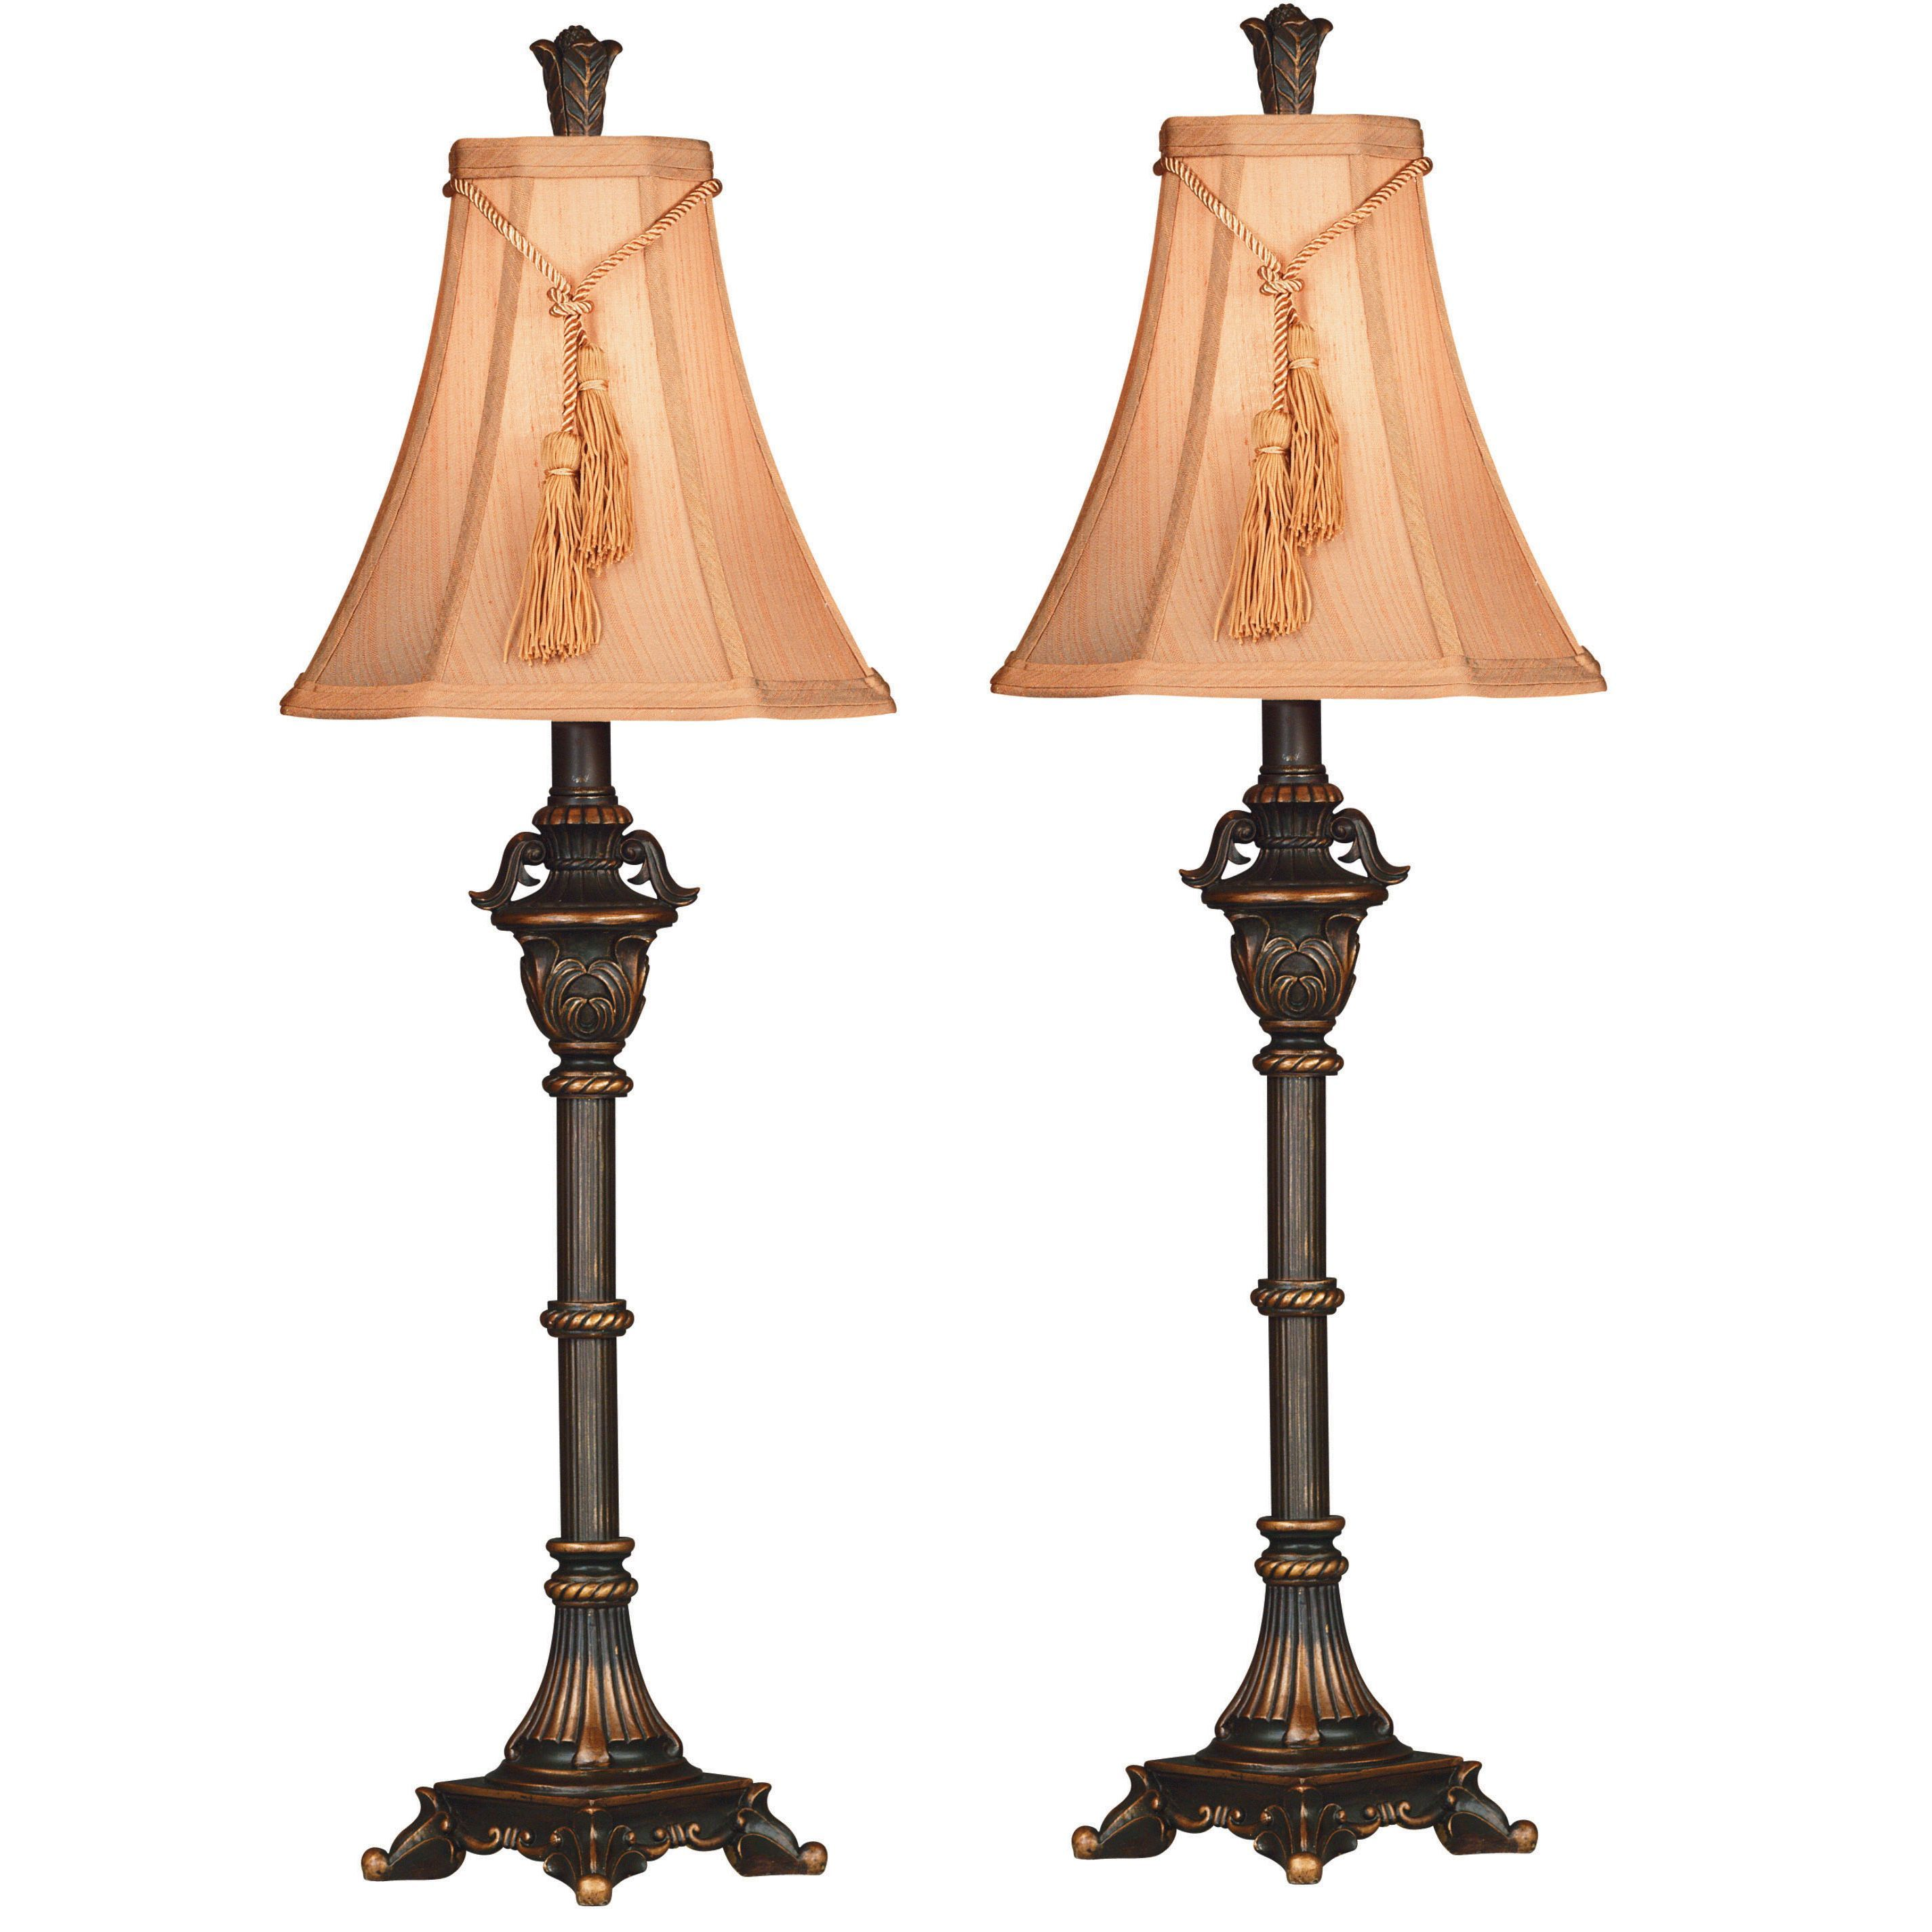 Coolidge buffet lamp set of 2 by design craft room lamp coolidge buffet lamp set of 2 by design craft geotapseo Choice Image